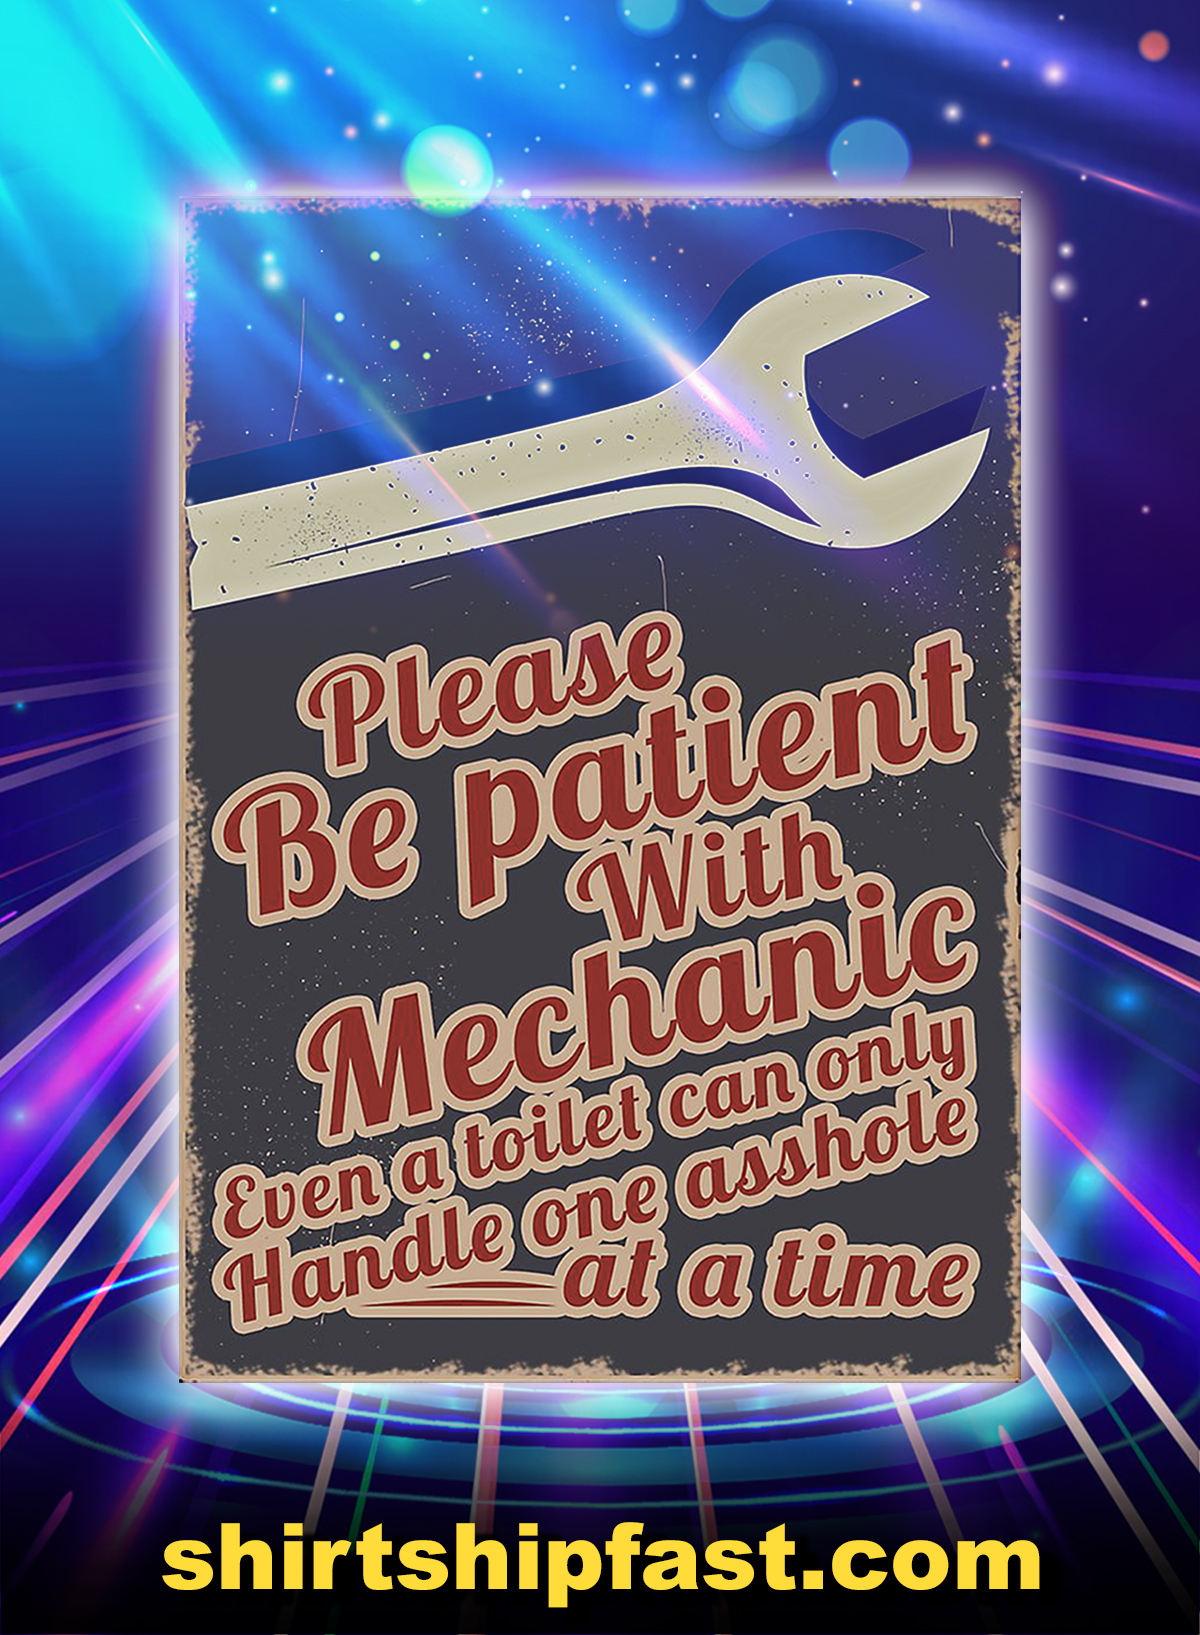 Please Be Patient With Mechanic Poster - A1